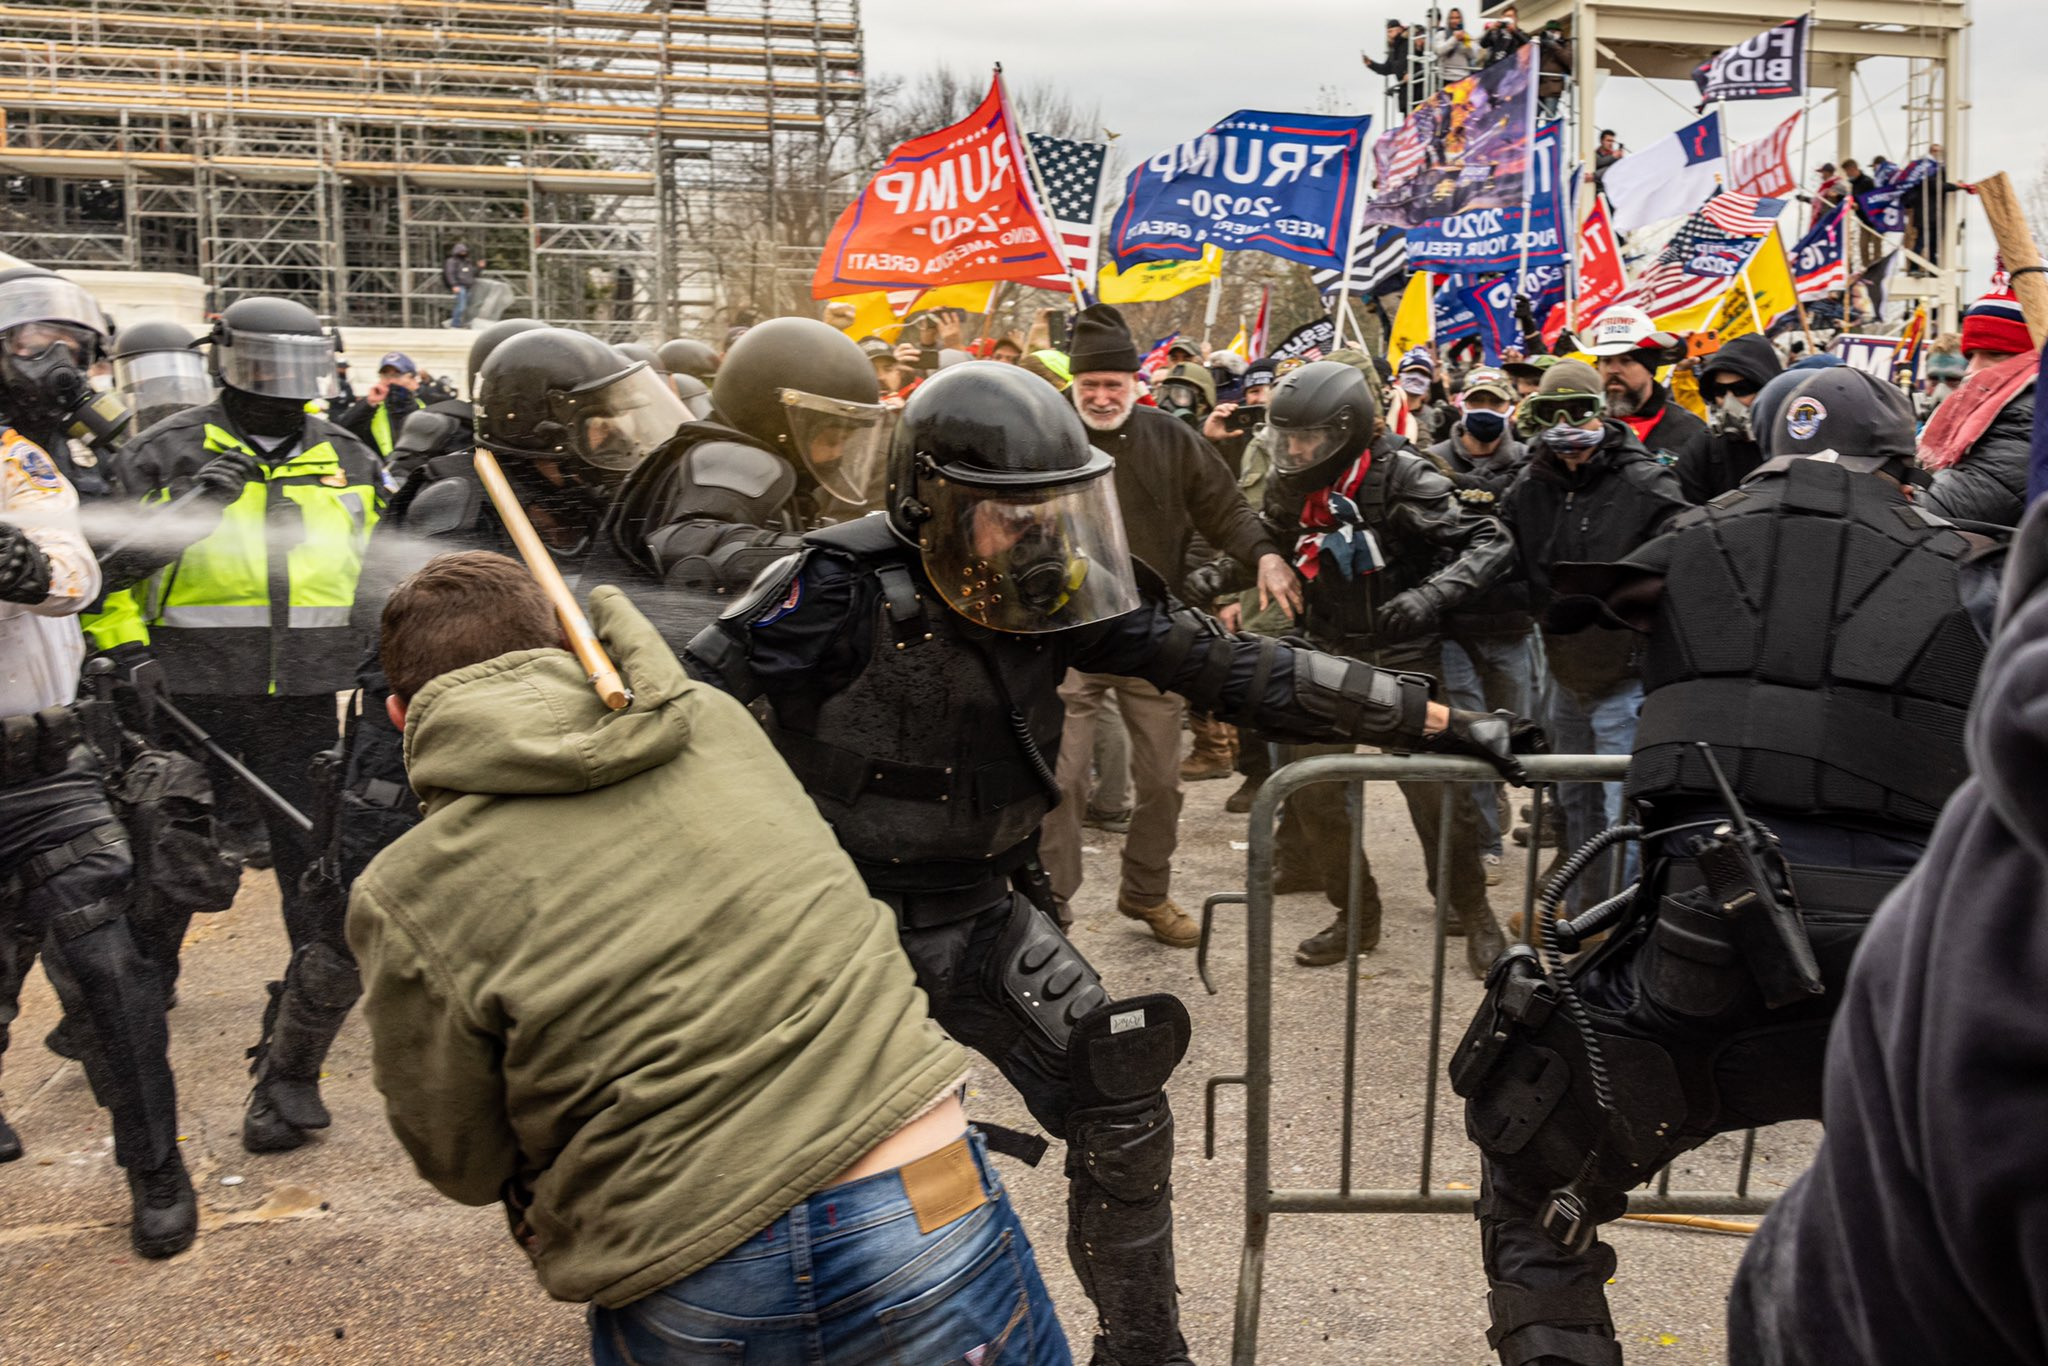 Tennesseans play role in mob scene at U.S. Capitol